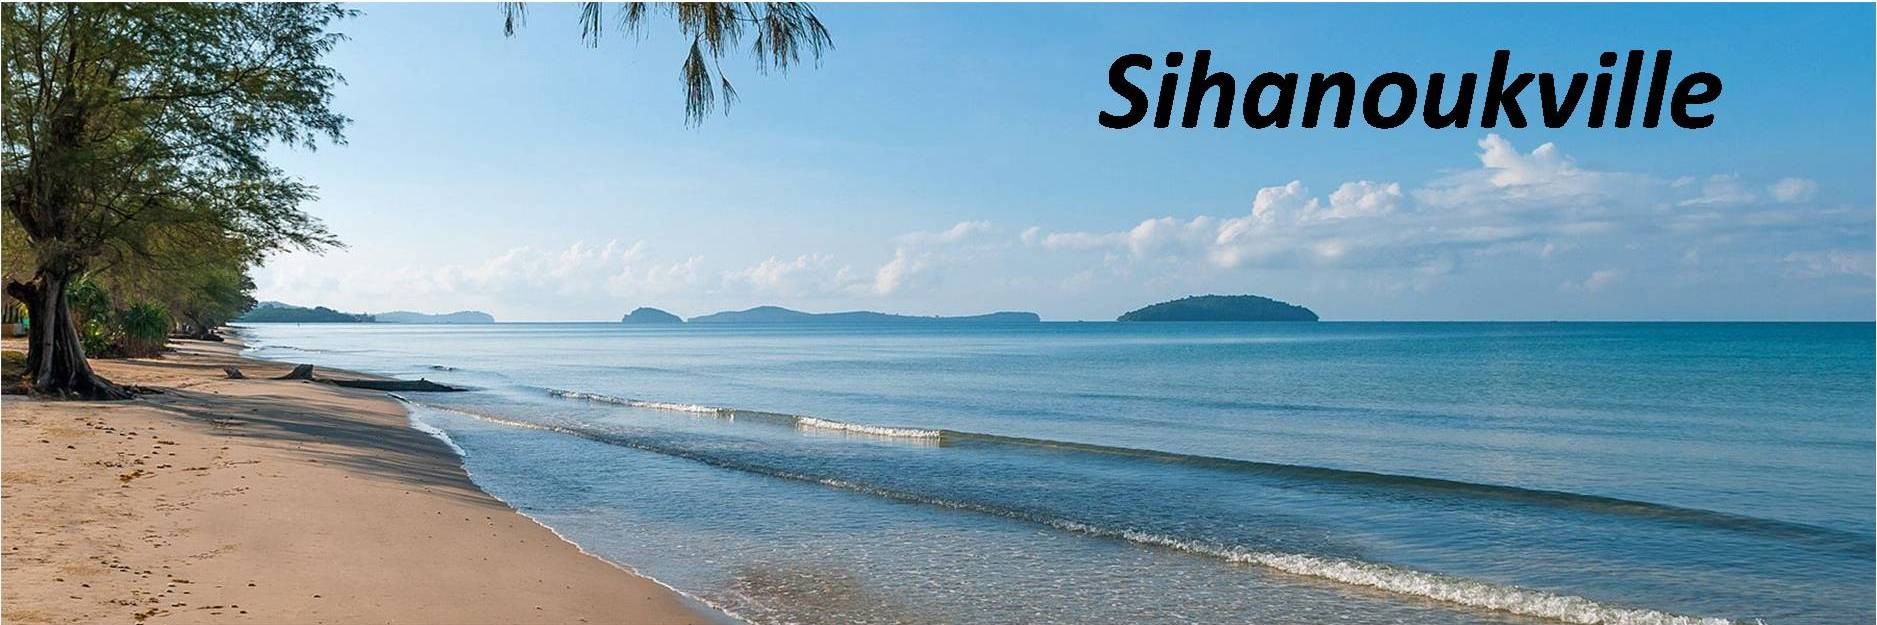 Invest in Sihanoukville property